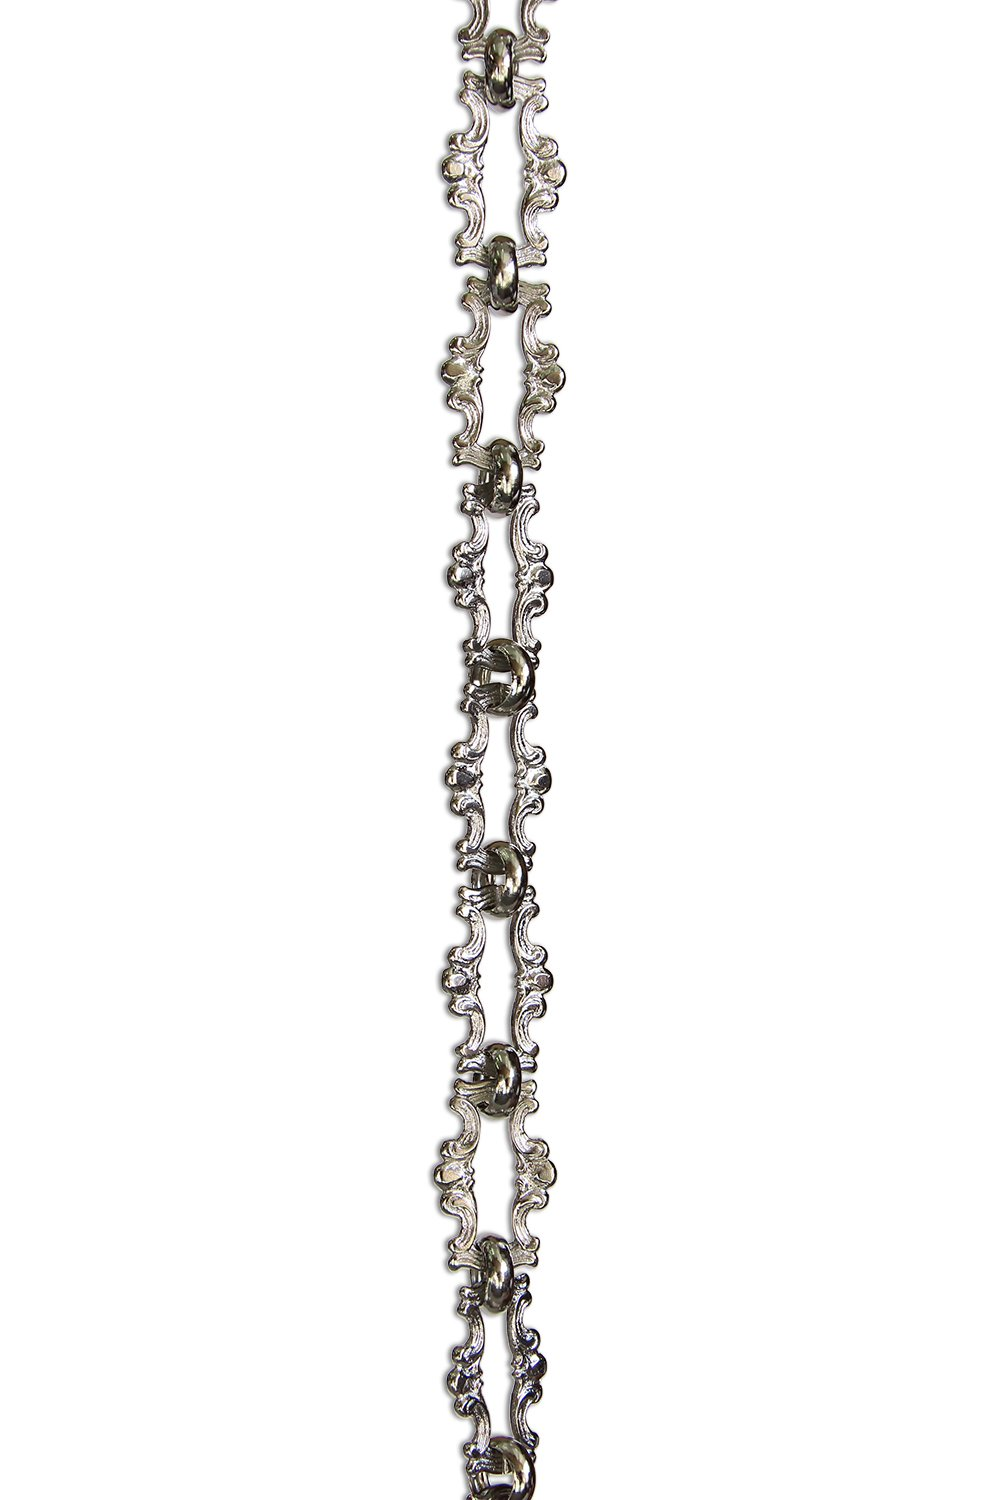 RCH Hardware CH-02-PN Decorative Polished Nickel Solid Brass Chain for Hanging, Lighting - Motif Welded Links (1 Foot)